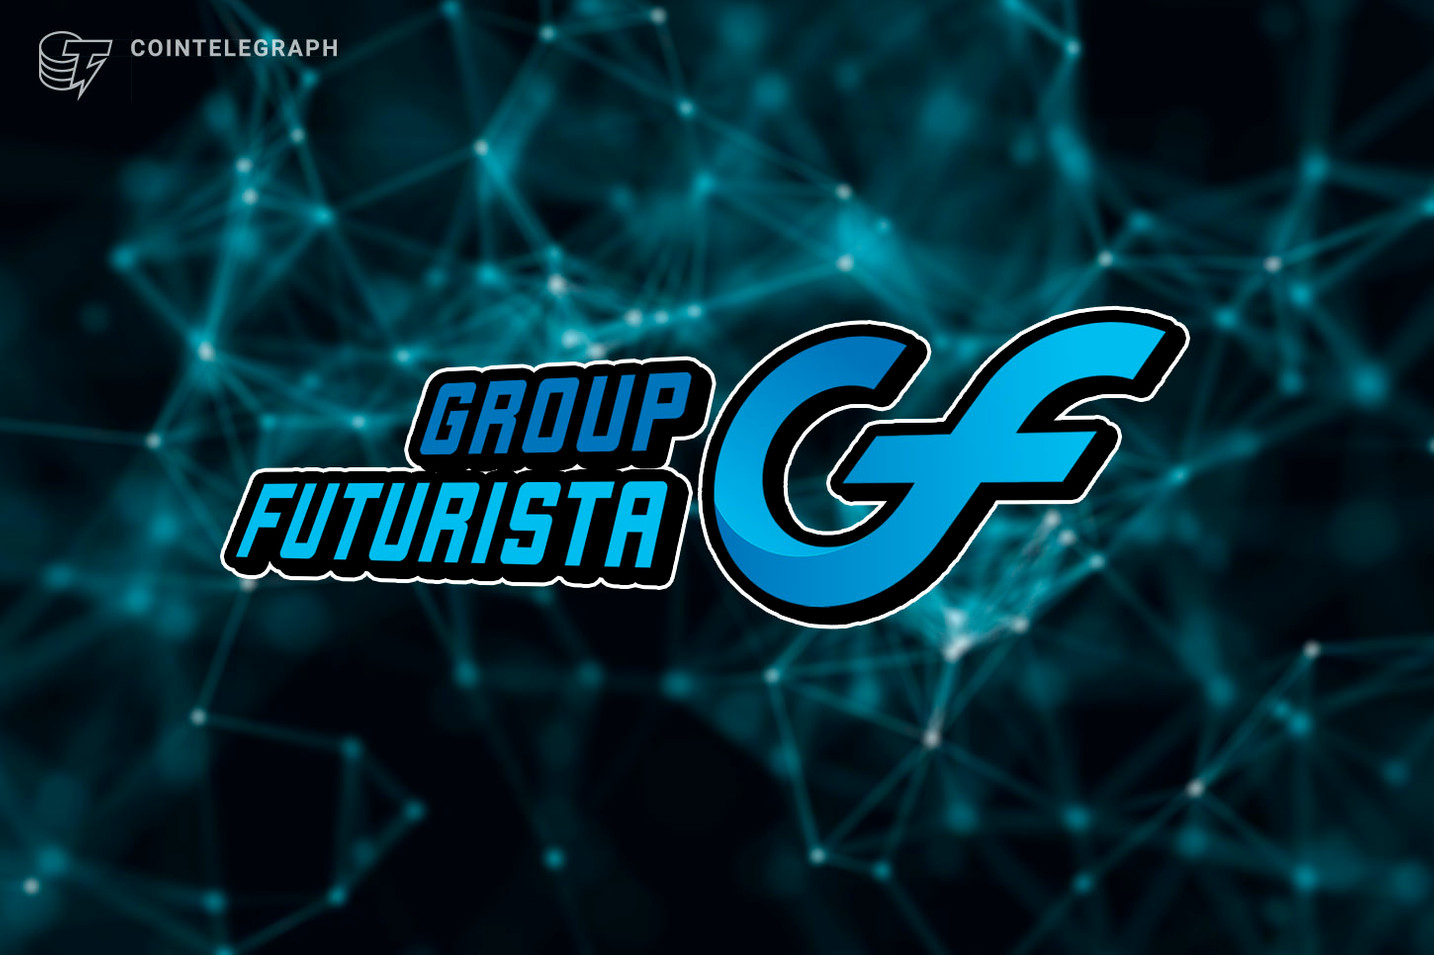 Digital Identity 2.0 Webinar Highlights hosted by Group Futurista